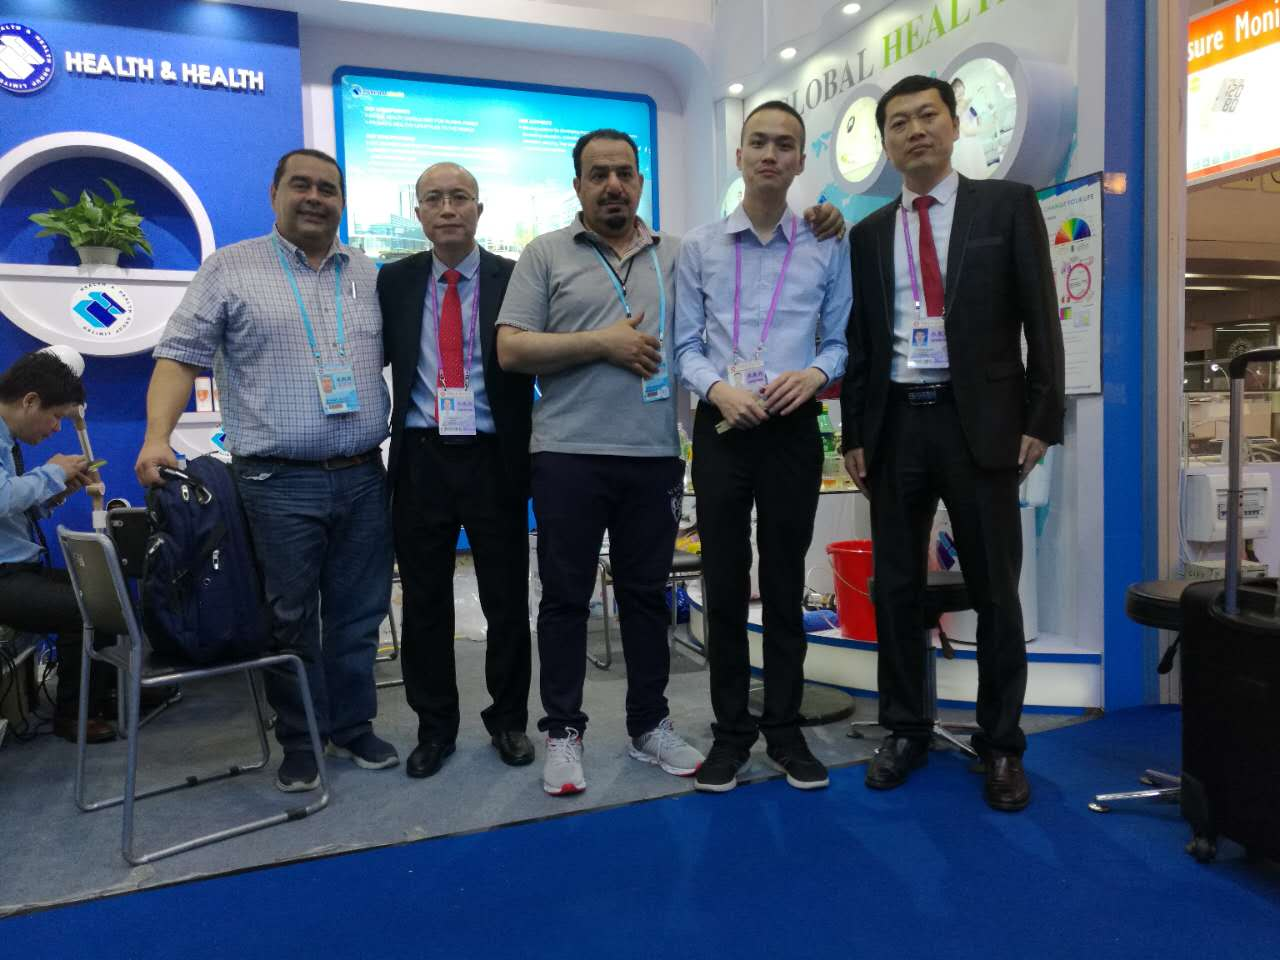 Warmly celebrate that we succeeded in attending 121th Canton Fair